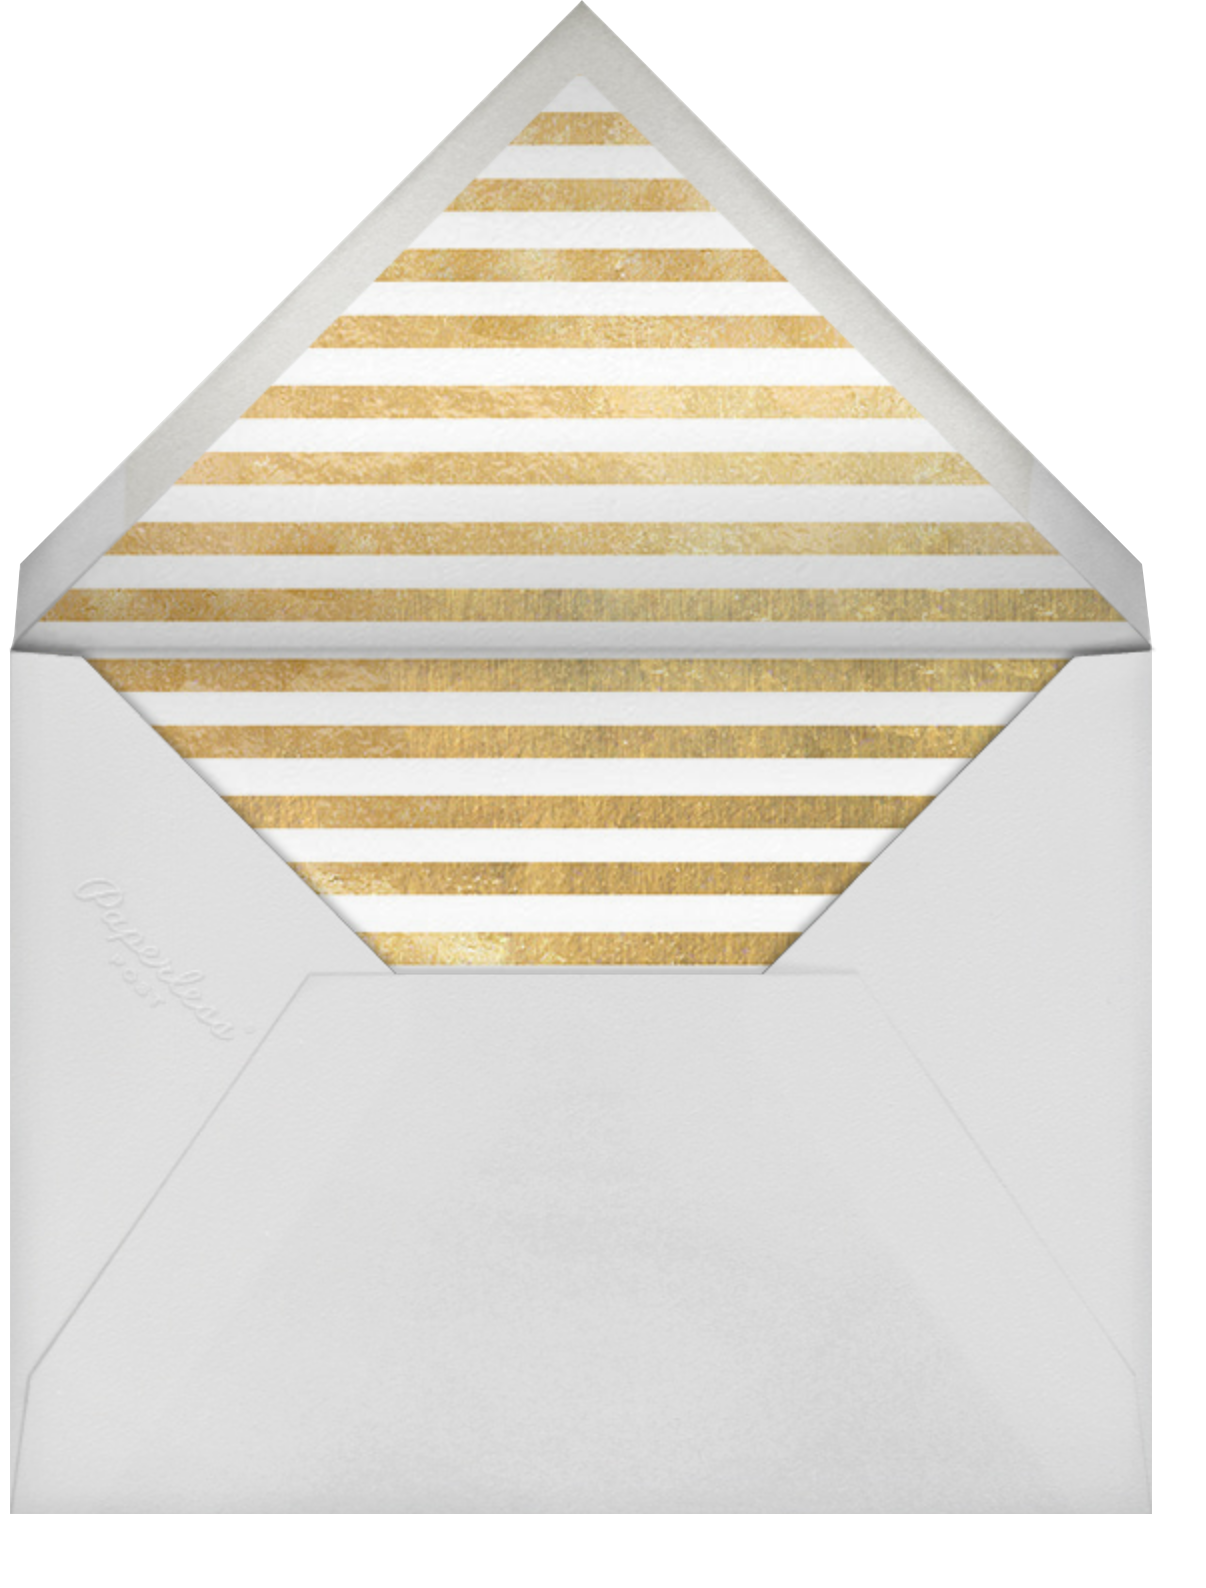 Champagne Bubbles - Gold - Paperless Post - Adult birthday - envelope back